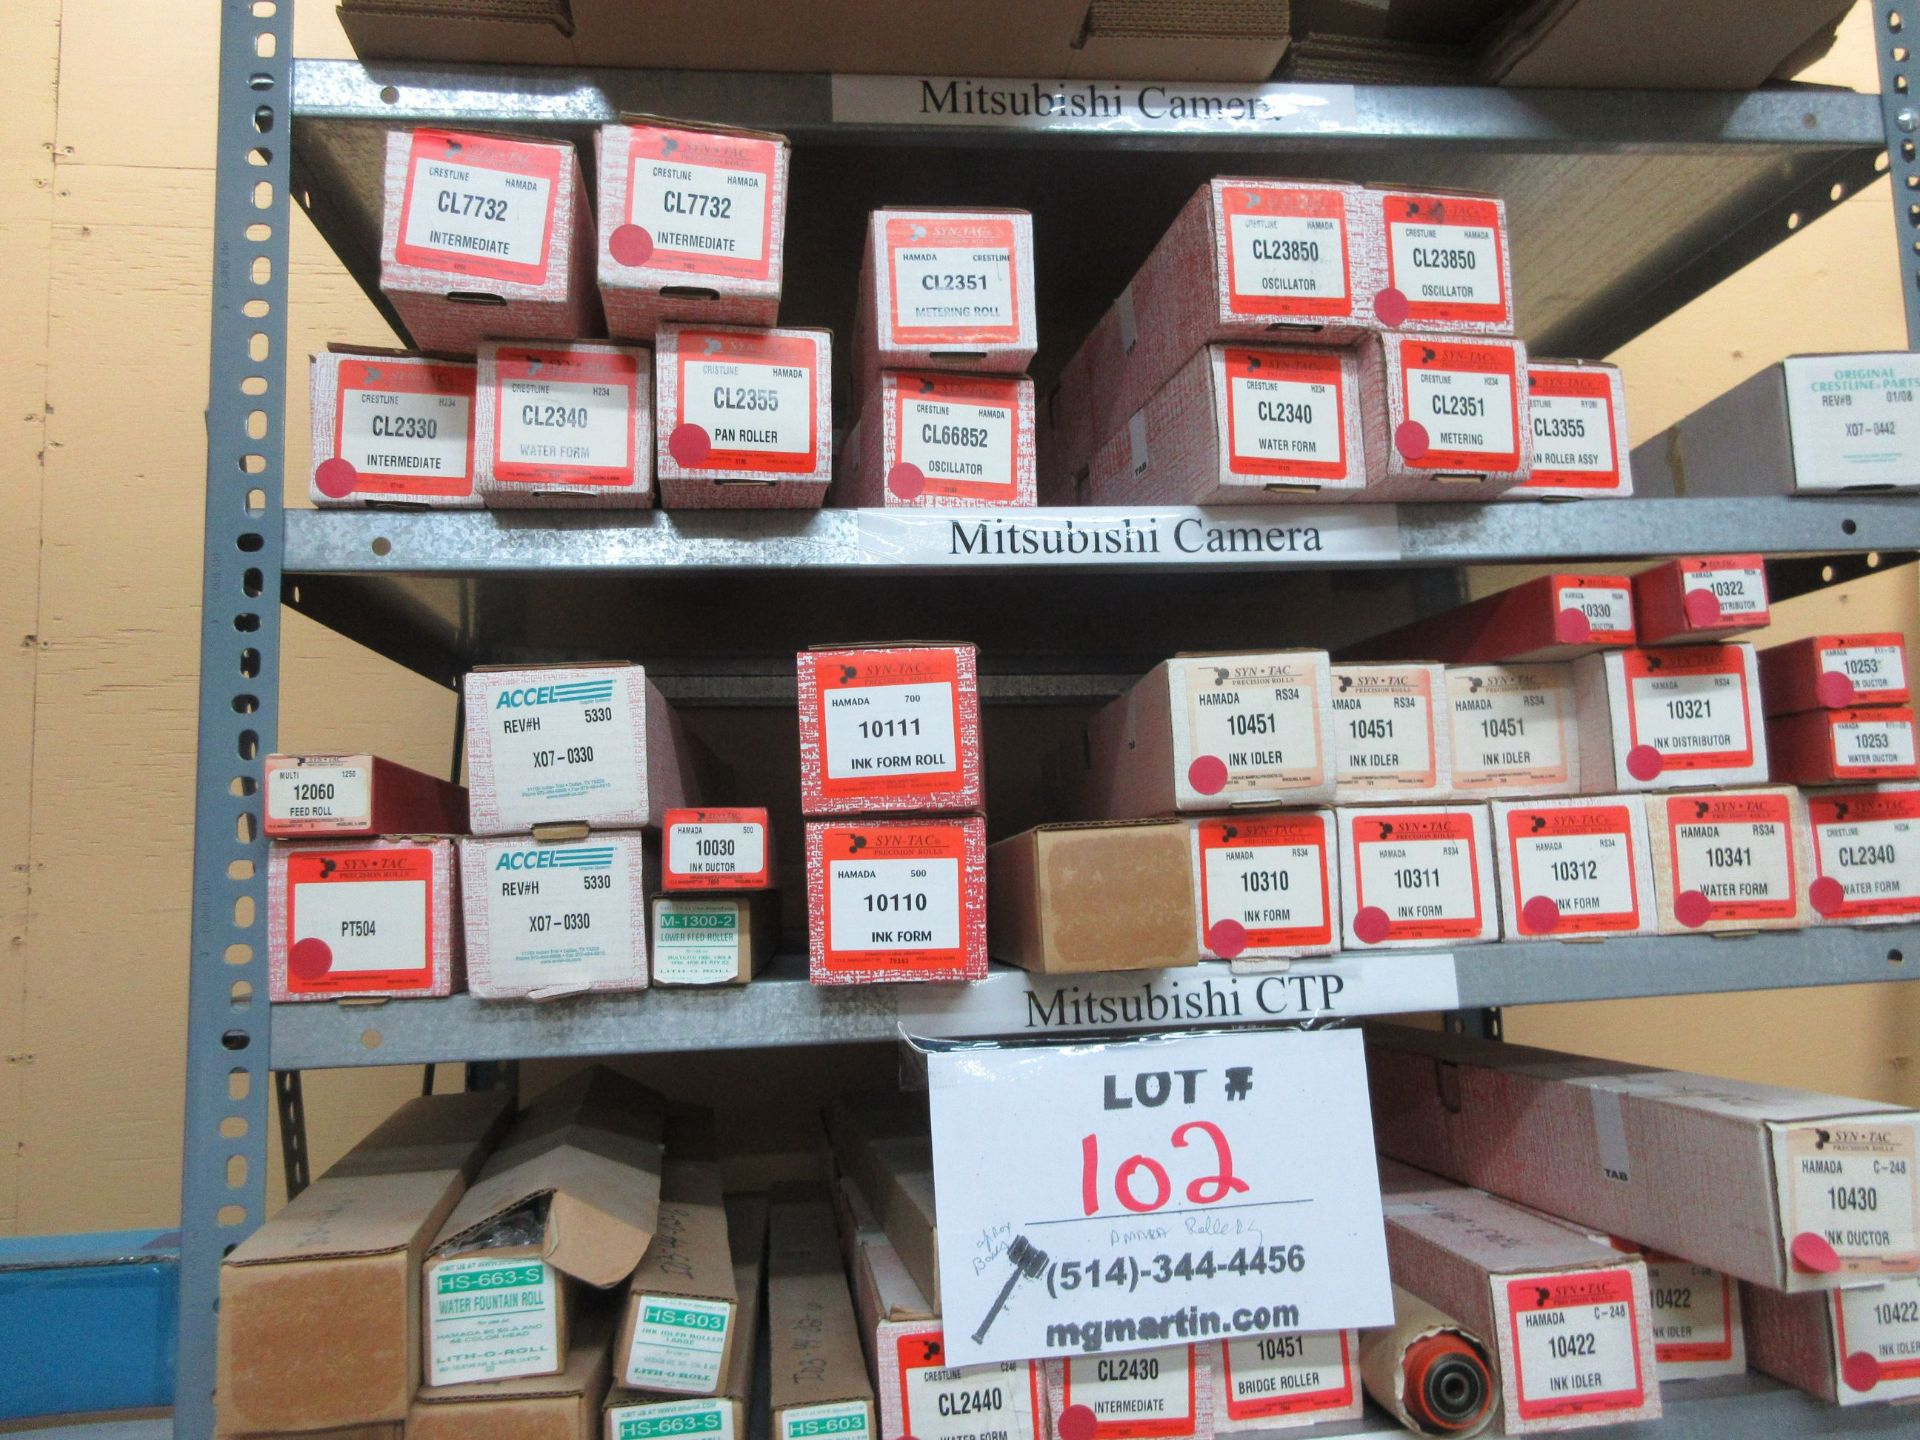 Lot 102 - LOT Including boxes of assorted rollers for HAMADA (approx. Qty 100 boxes)